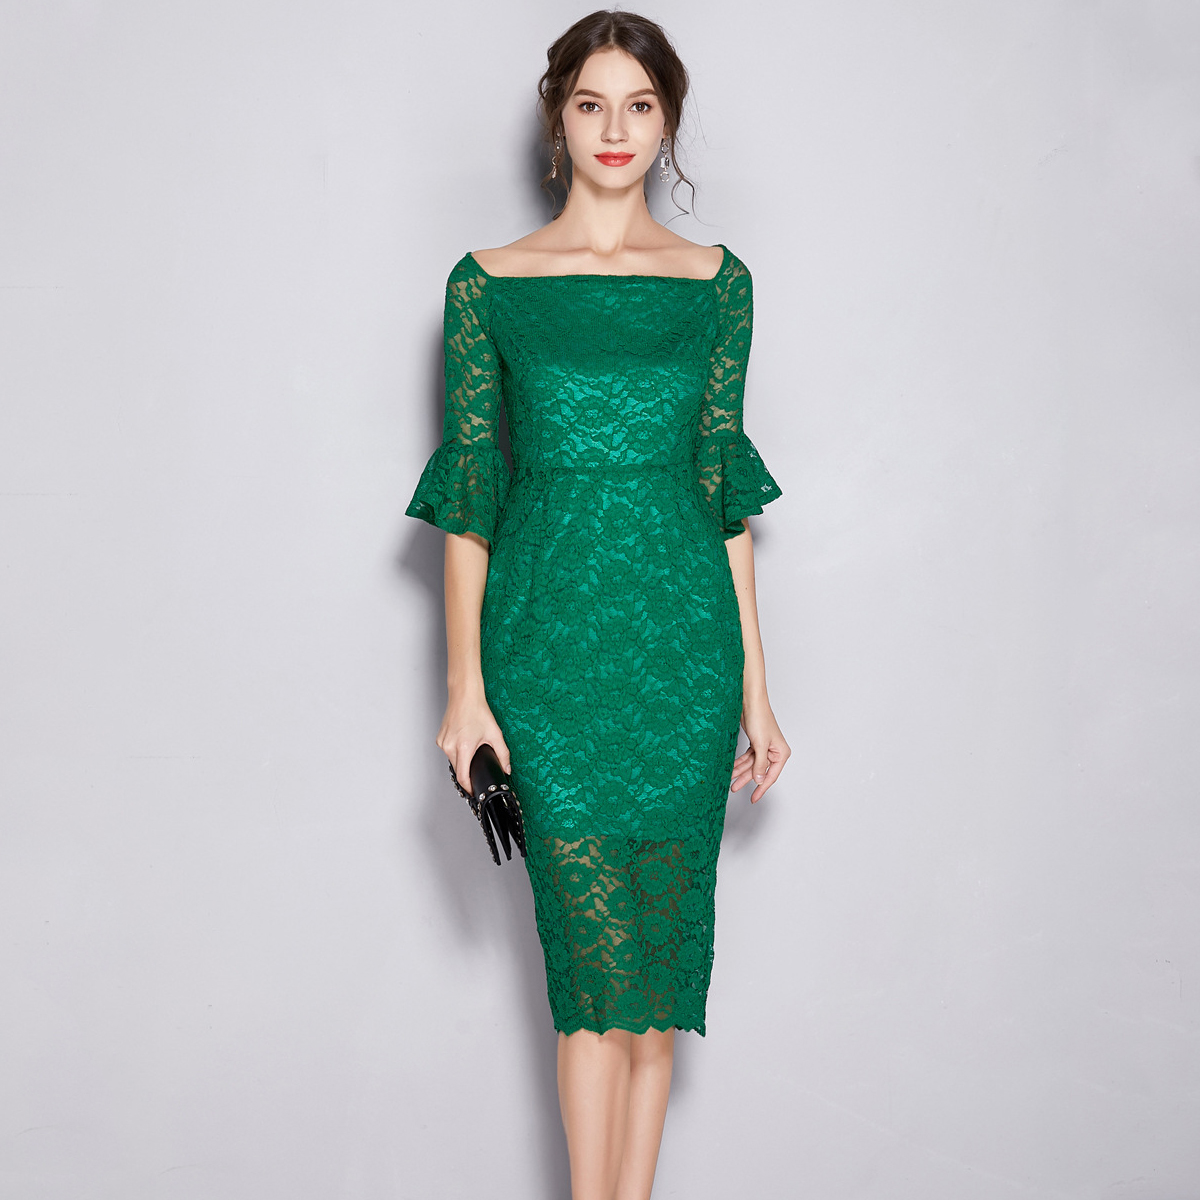 Real Photos Green LACE Elegant Sheath   Evening     Dress   Square Collar Cut-Out Sexy Prom Gown Formal Party   Dresses   Robe De Soiree